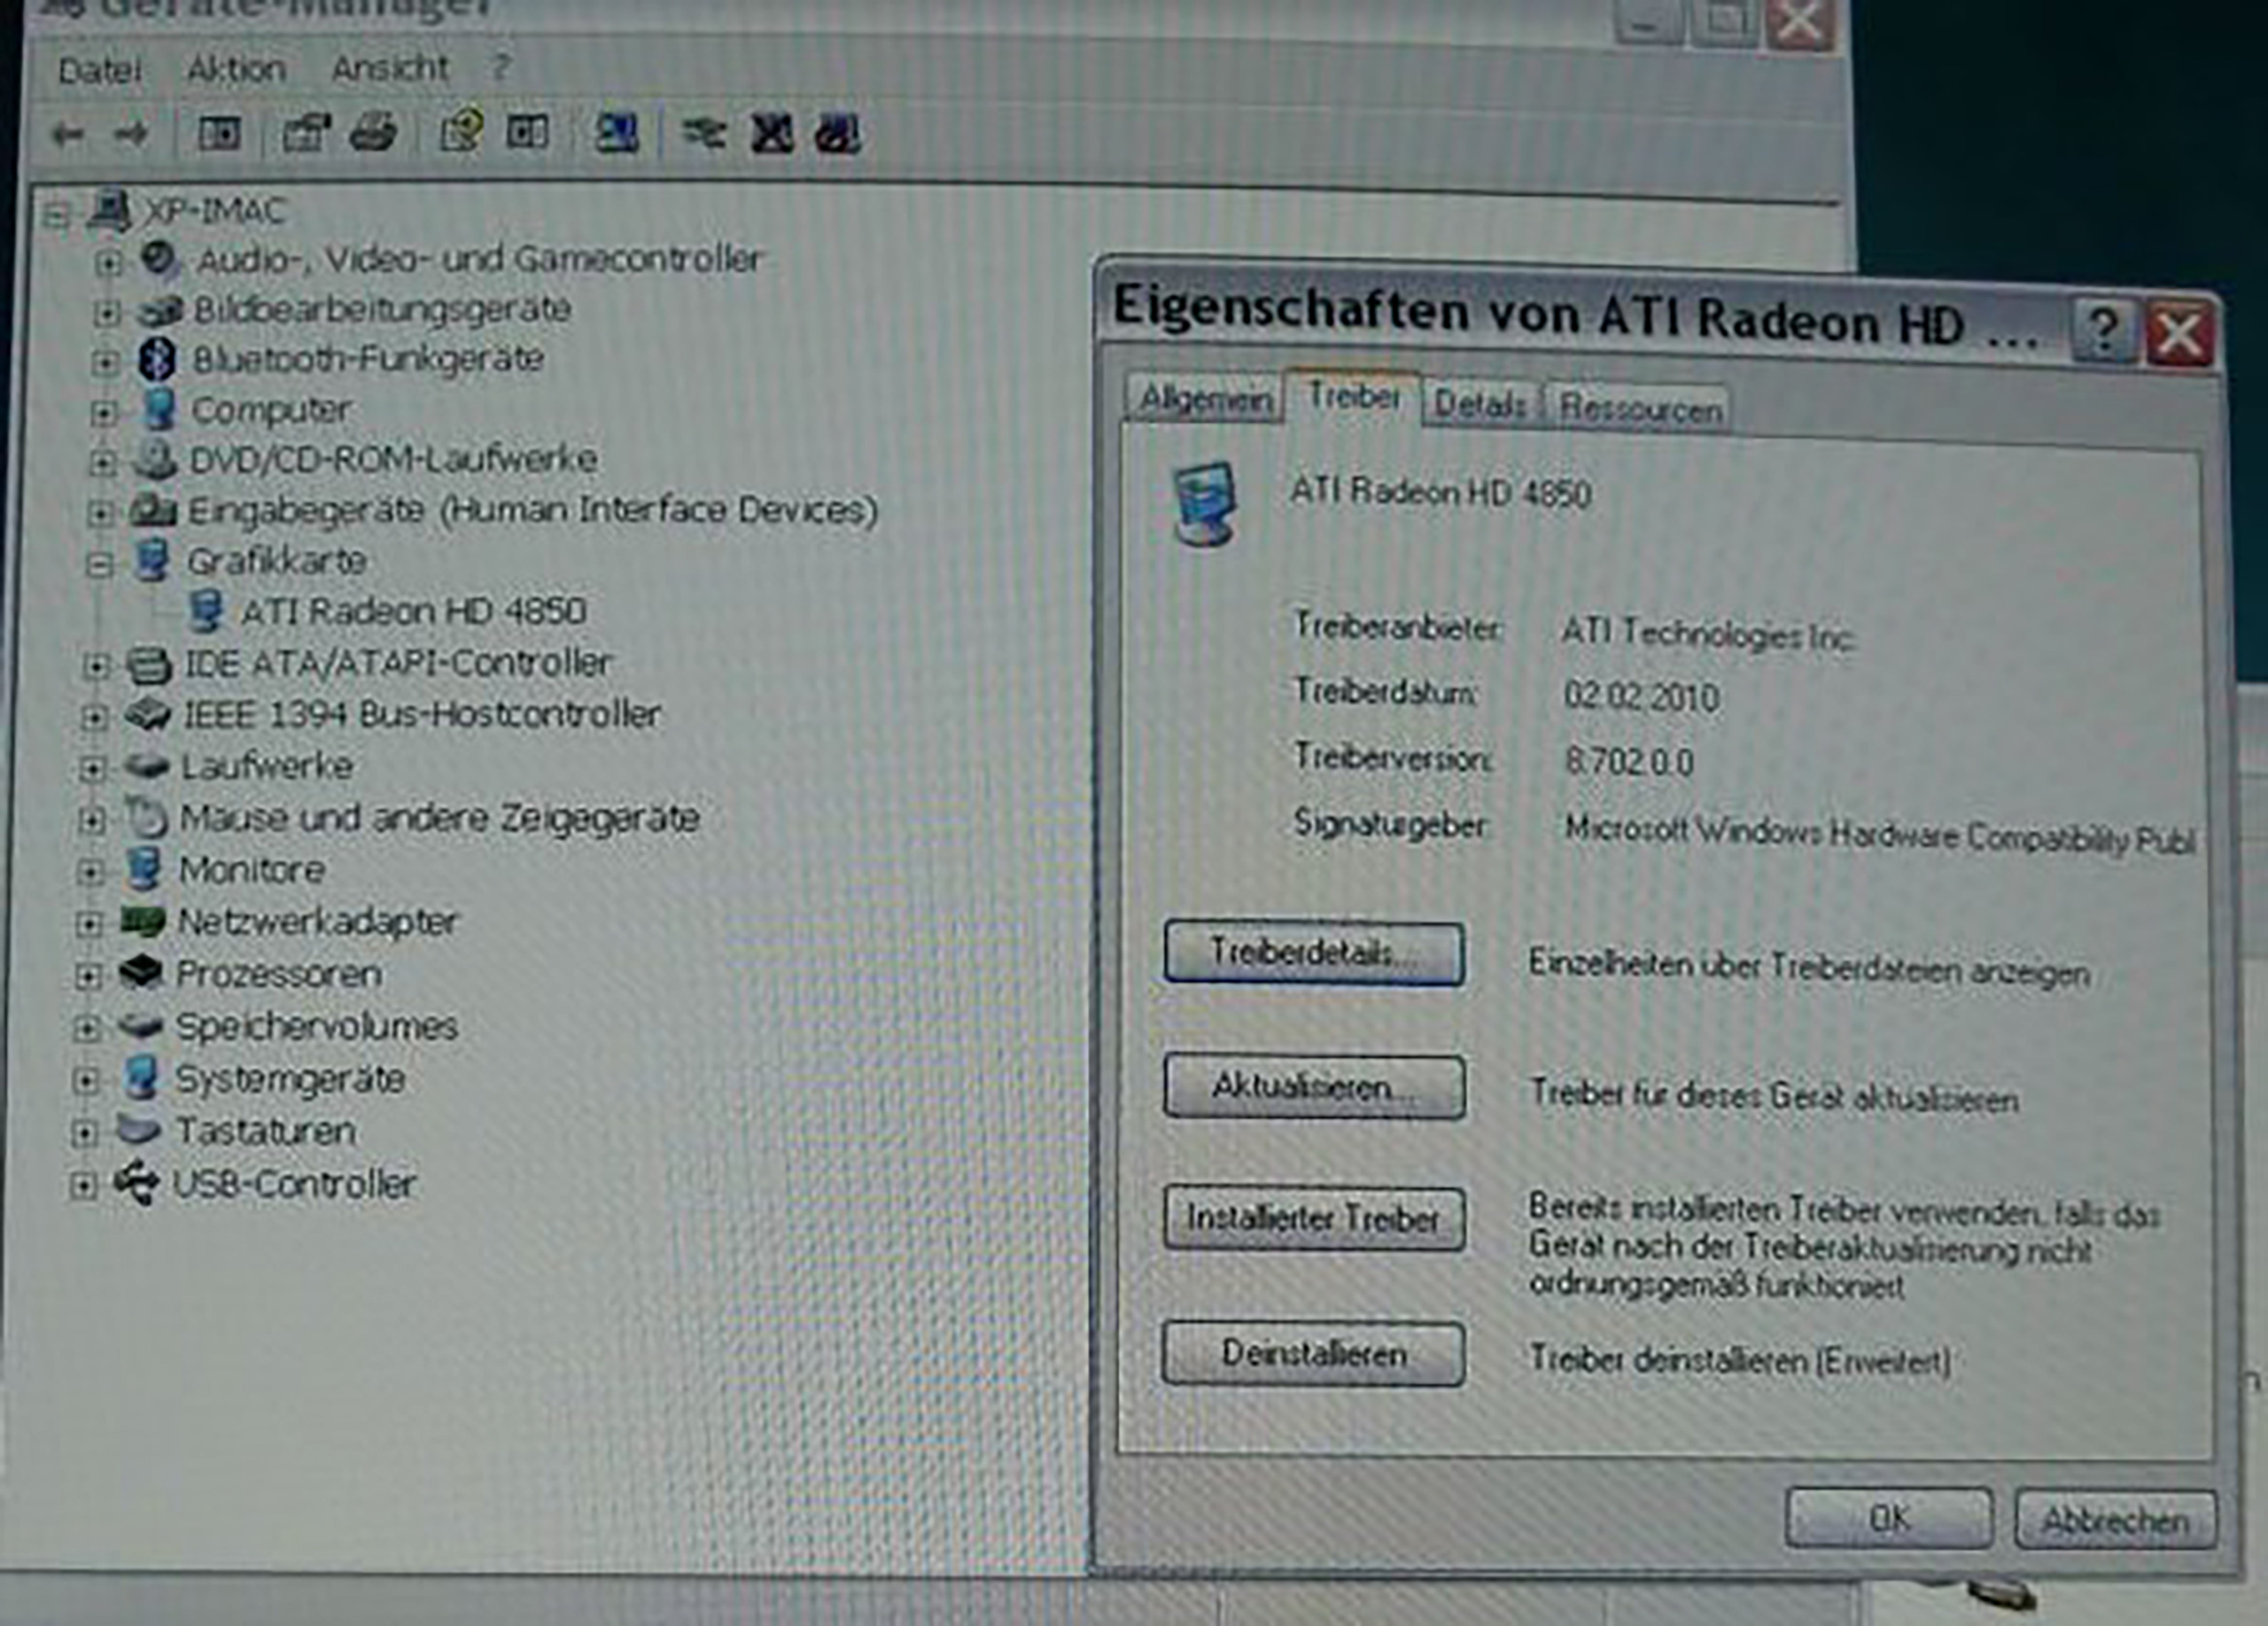 ATI Treiber unter Boot Camp 3.1 mit Windows XP SP3